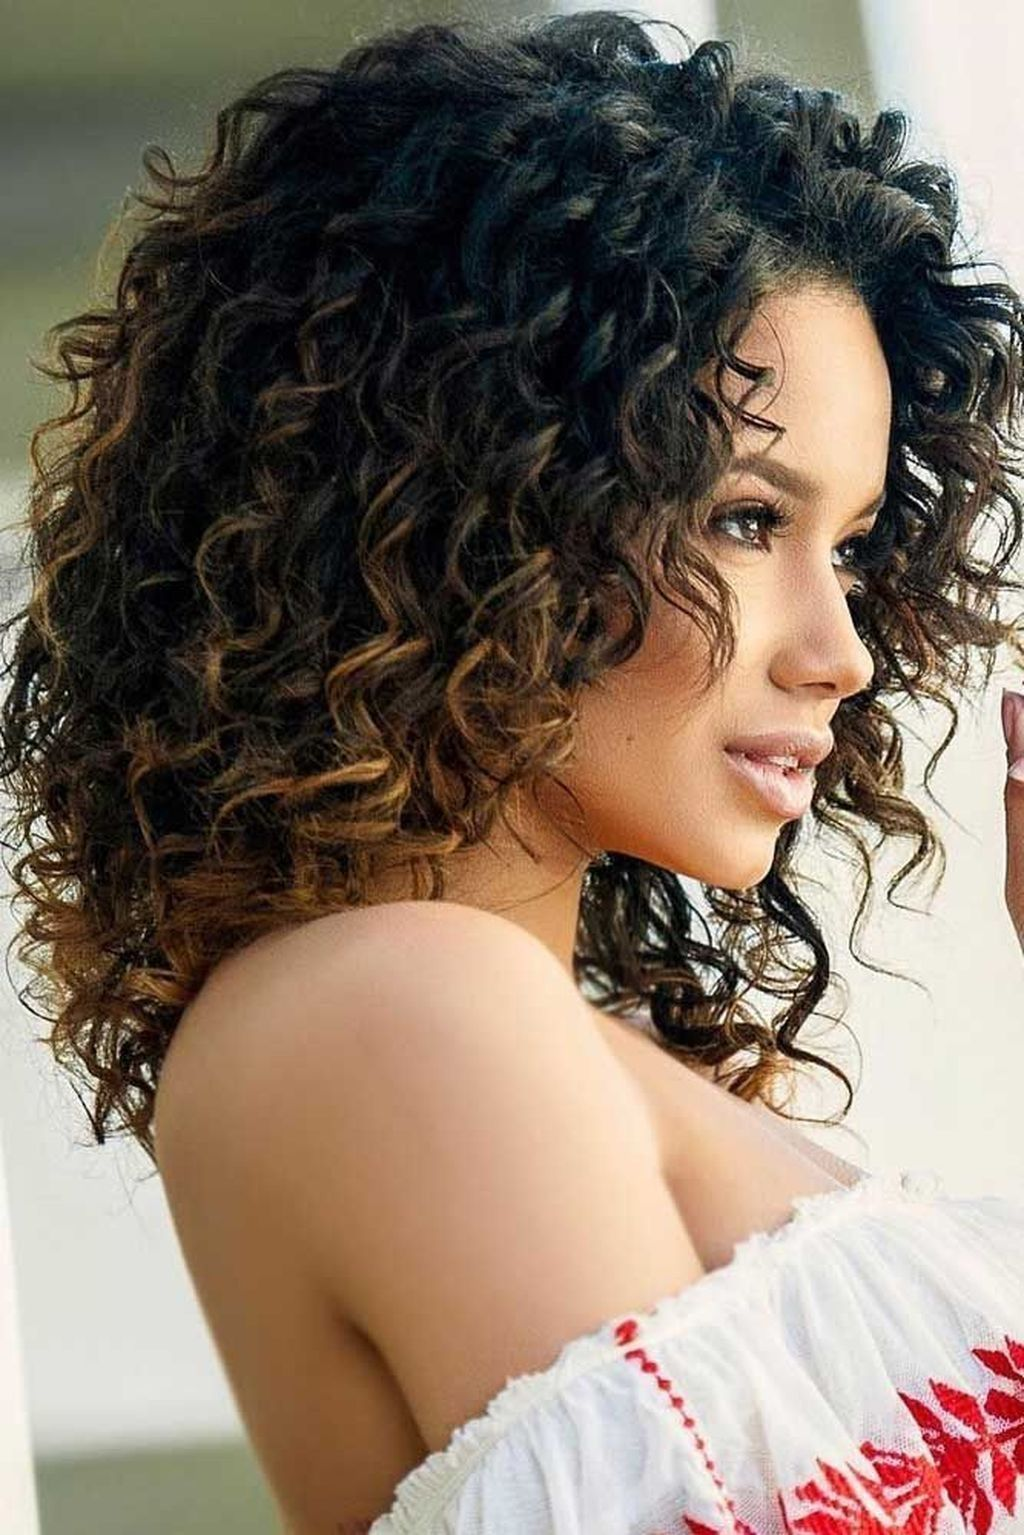 Naturally Curly Hairstyles 13 Curly Hair Styles Naturally Beautiful Natural Curly Hair Curly Hair Styles